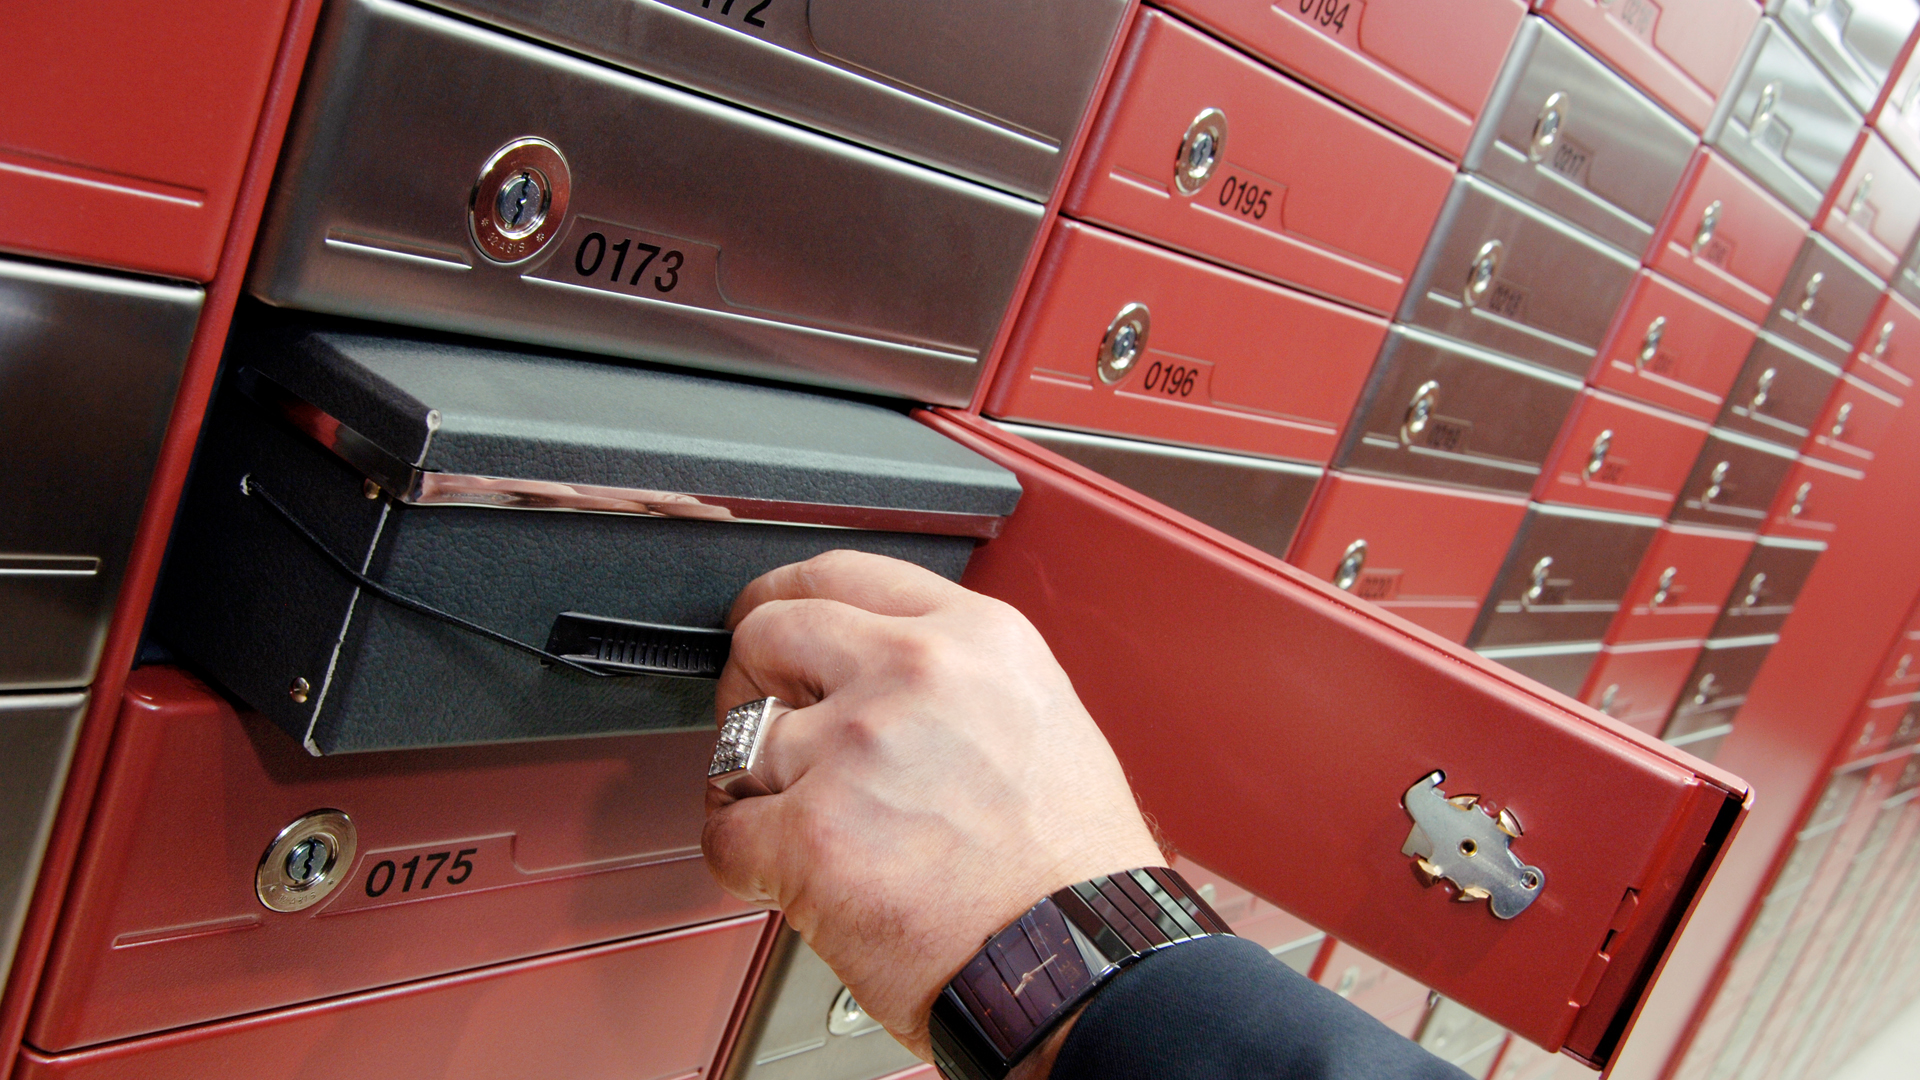 Safes and Vaults